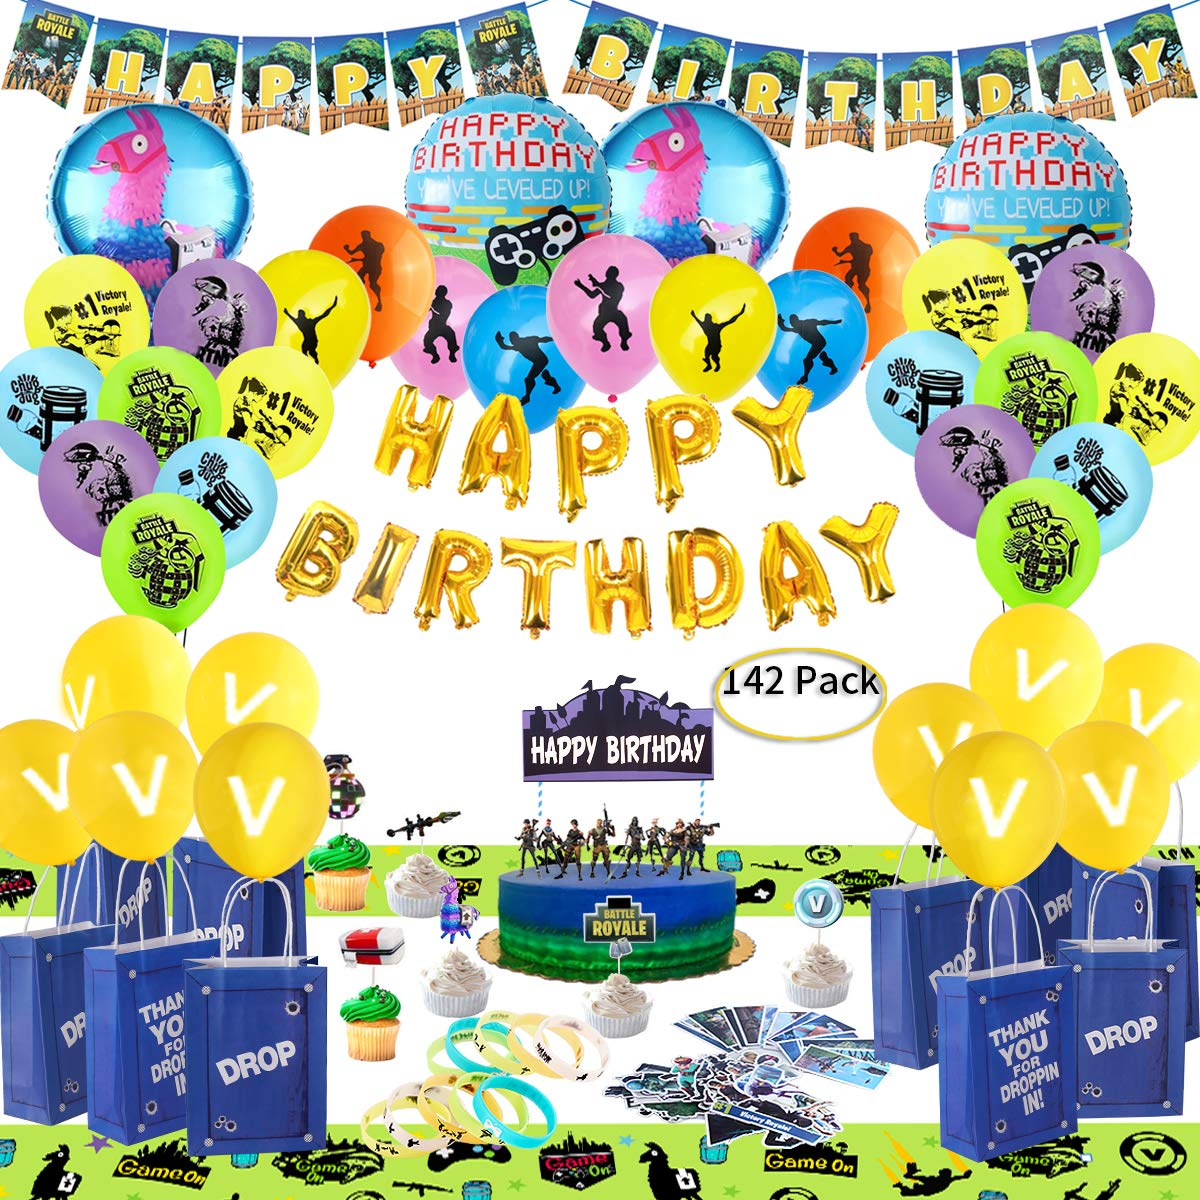 Birthday Party Supplies for Game Lovers, 142 pcs Gaming Theme Party Decorations - include Balloons, Party Favors Bags, Table Cover, Bracelets, Banner, Stickers, Cake Toppers by Sara&Leena